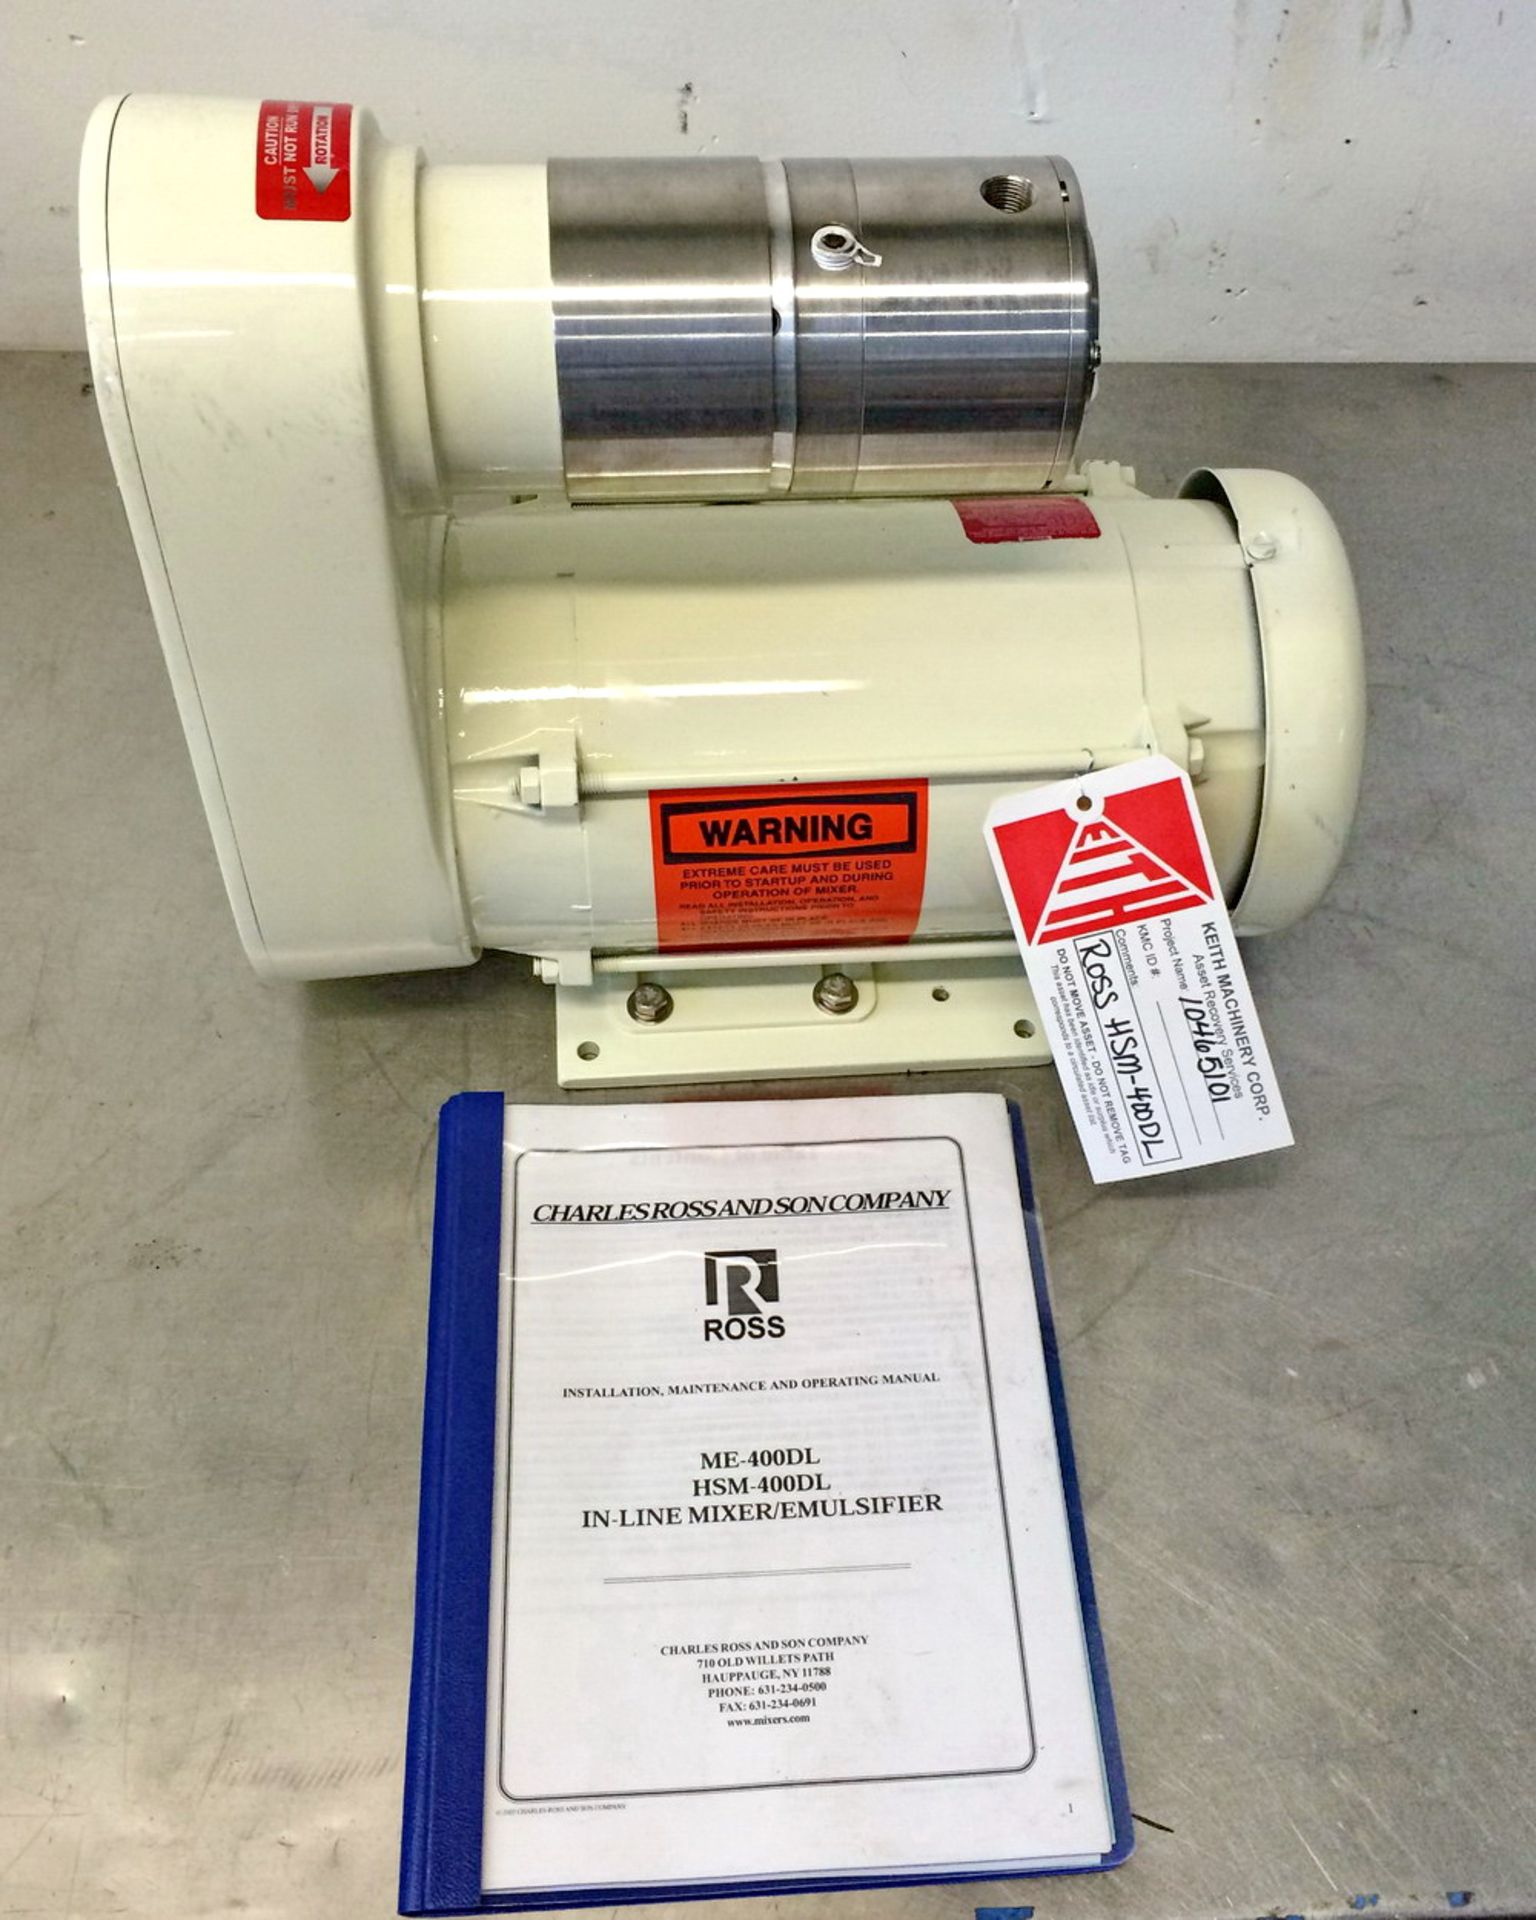 Lot 21 - New/Unused Ross Lab Size Inline Rotor/Stator High Shear Mixer, Model HSM-400DL S/N 105004